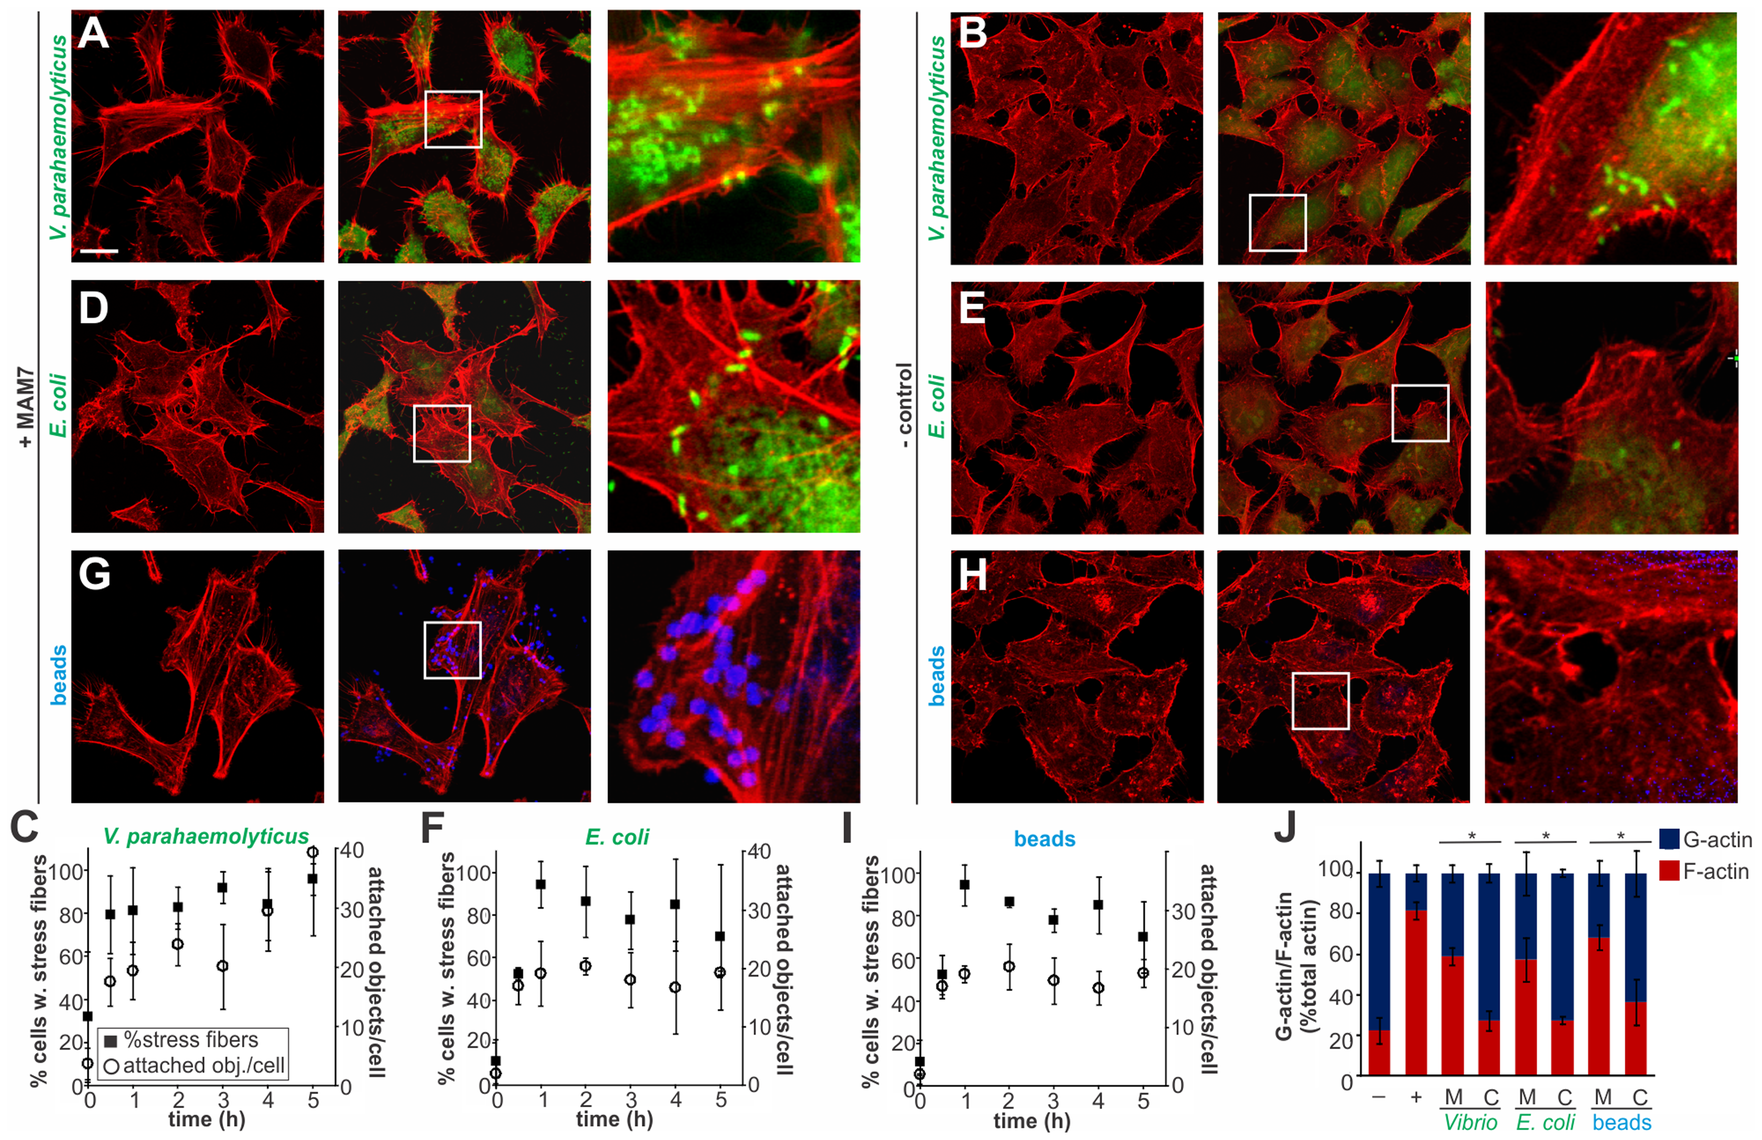 Clustering of MAM7 adhesin causes sustained actin rearrangements in host cells.